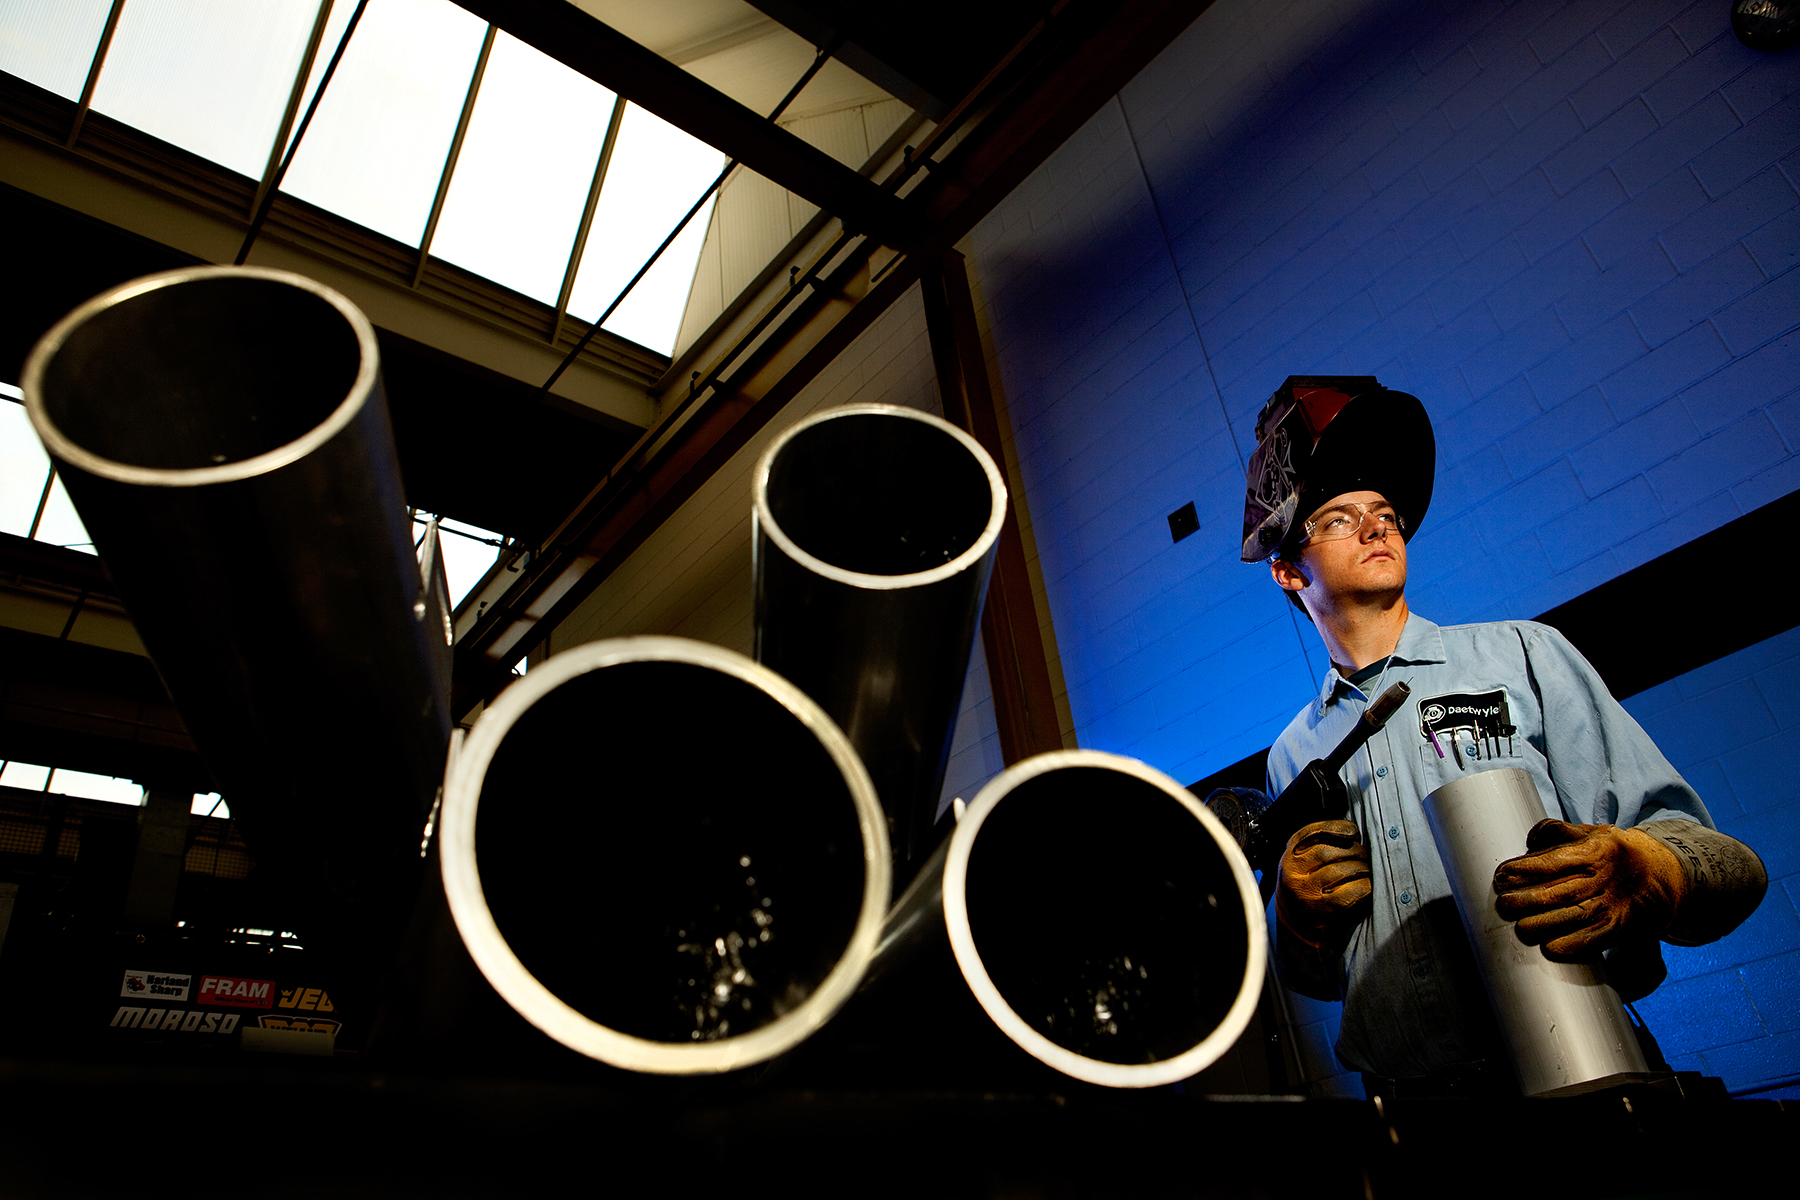 Blue gelled lighting makes a dynamic backdrop for a welder in a plant that manufactures equipment and products for the printing industry. The employee is wearing a welding shield or viser and is holding a blow torch. Four large pipes dominate the foreground of the photo.